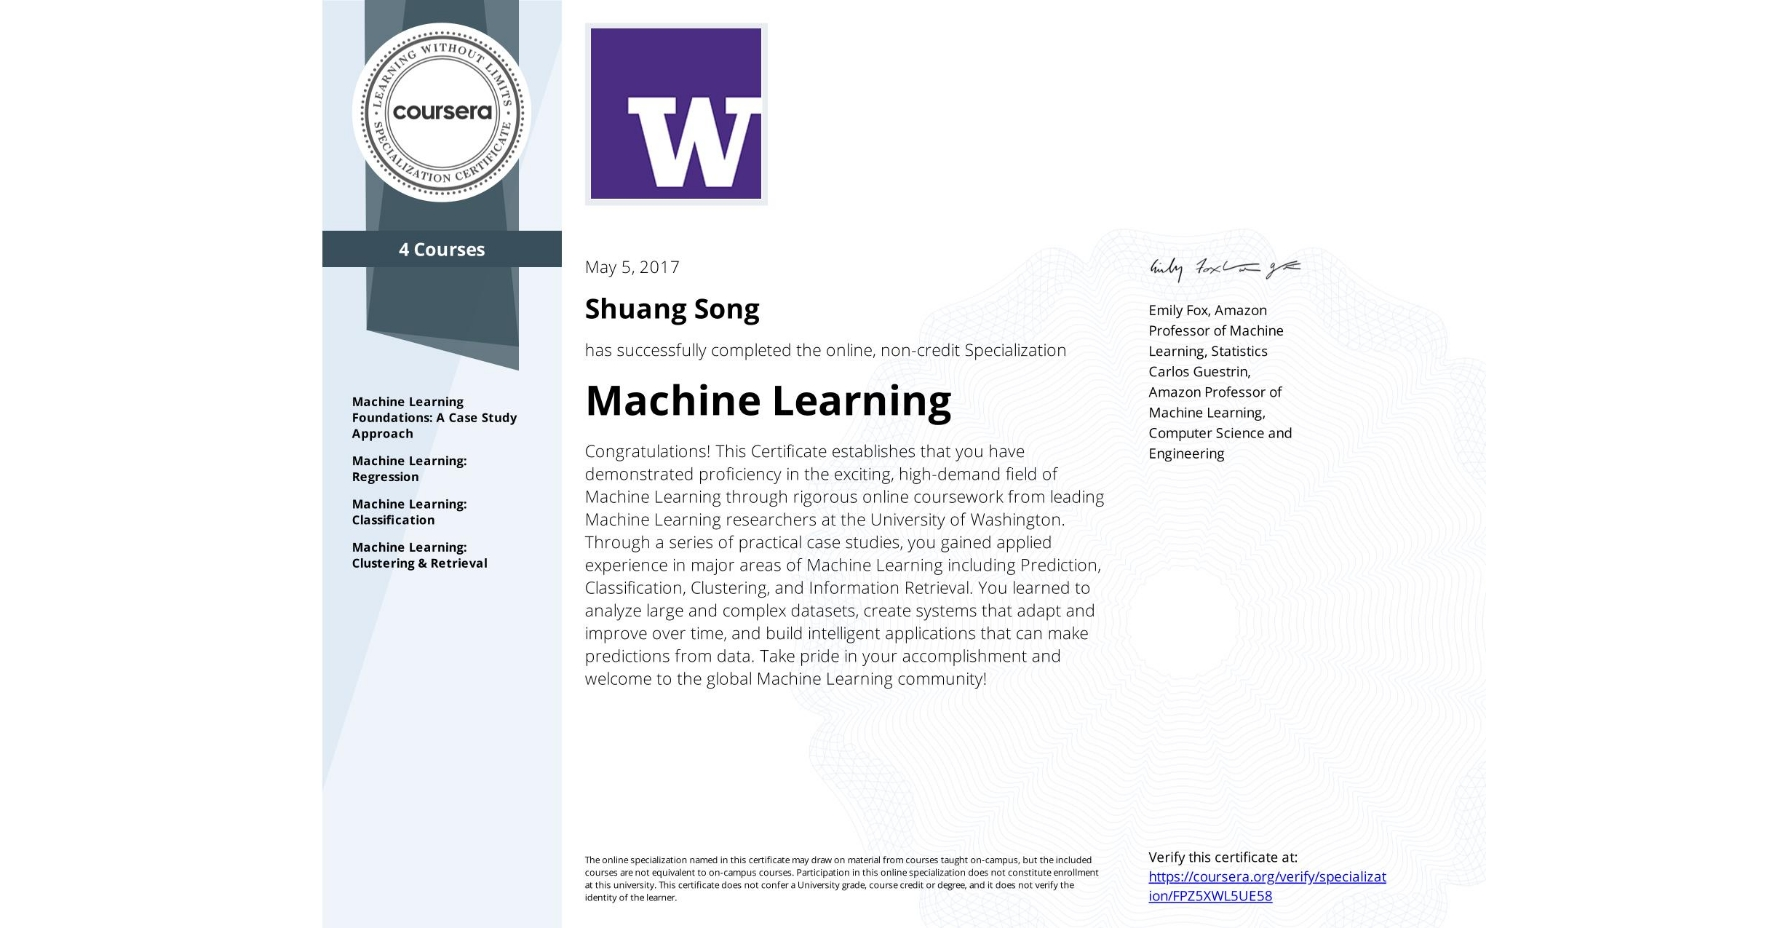 View certificate for Shuang Song, Machine Learning, offered through Coursera. Congratulations! This Certificate establishes that you have demonstrated proficiency in the exciting, high-demand field of Machine Learning through rigorous online coursework from leading Machine Learning researchers at the University of Washington. Through a series of practical case studies, you gained applied experience in major areas of Machine Learning including Prediction, Classification, Clustering, and Information Retrieval. You learned to analyze large and complex datasets, create systems that adapt and improve over time, and build intelligent applications that can make predictions from data. Take pride in your accomplishment and welcome to the global Machine Learning community!